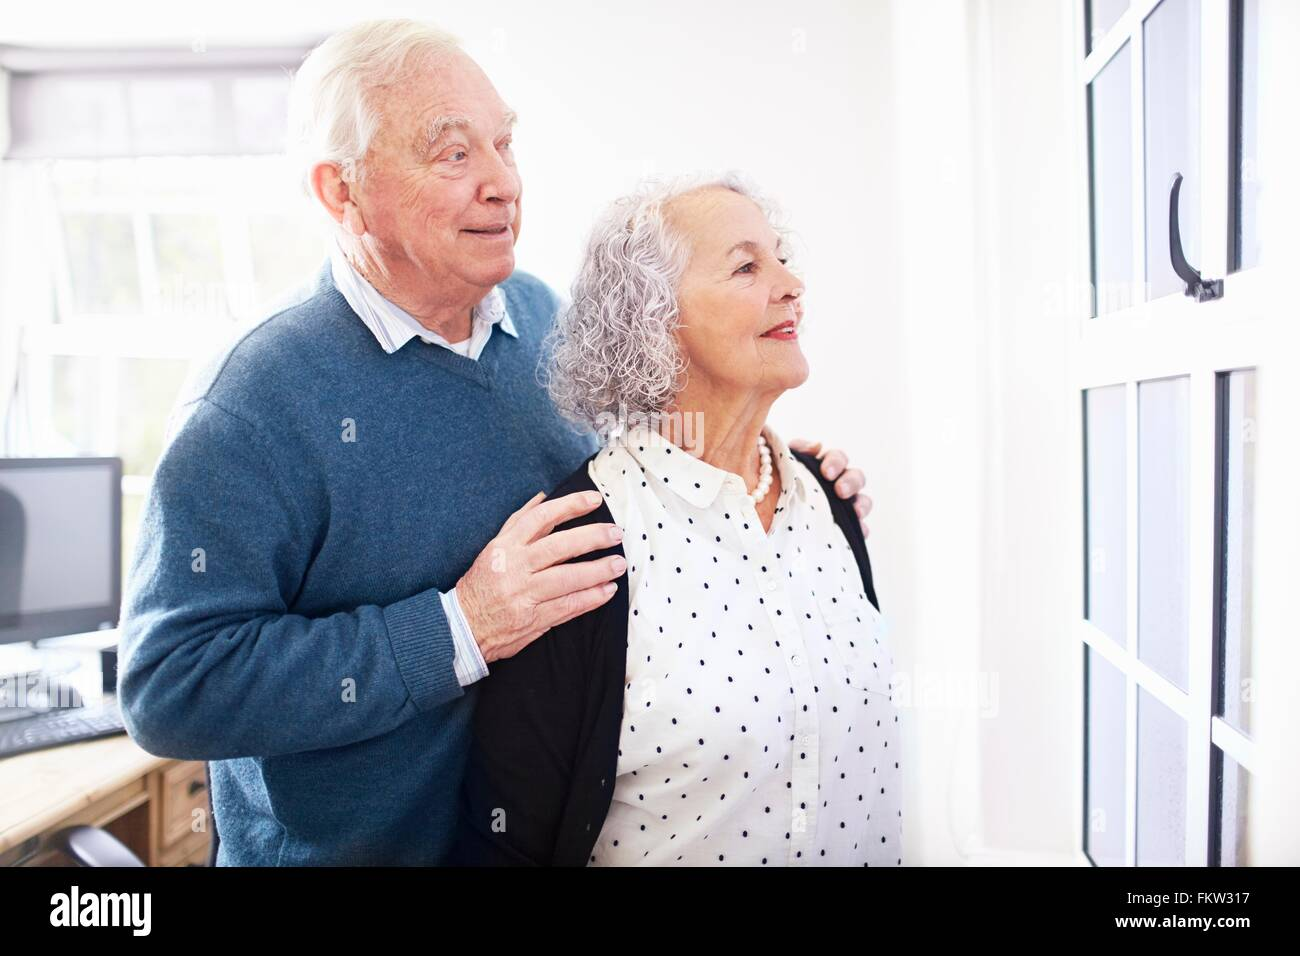 Senior couple in office looking out of window smiling - Stock Image